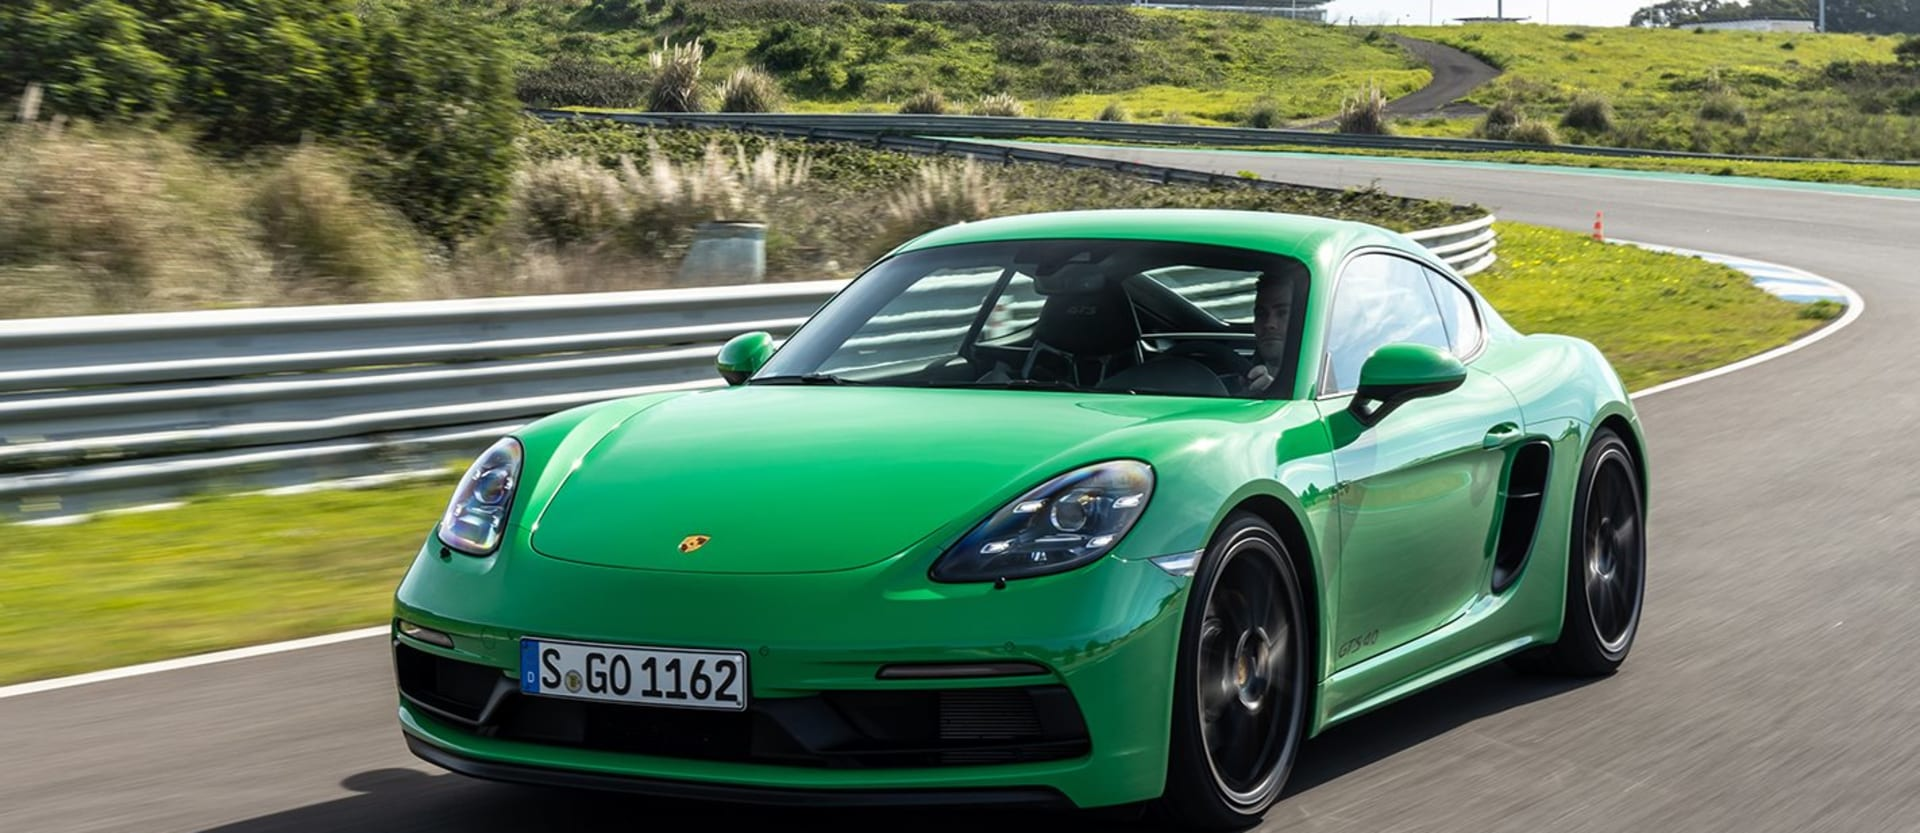 Porsche Cayman G Ts Review Main Jpg